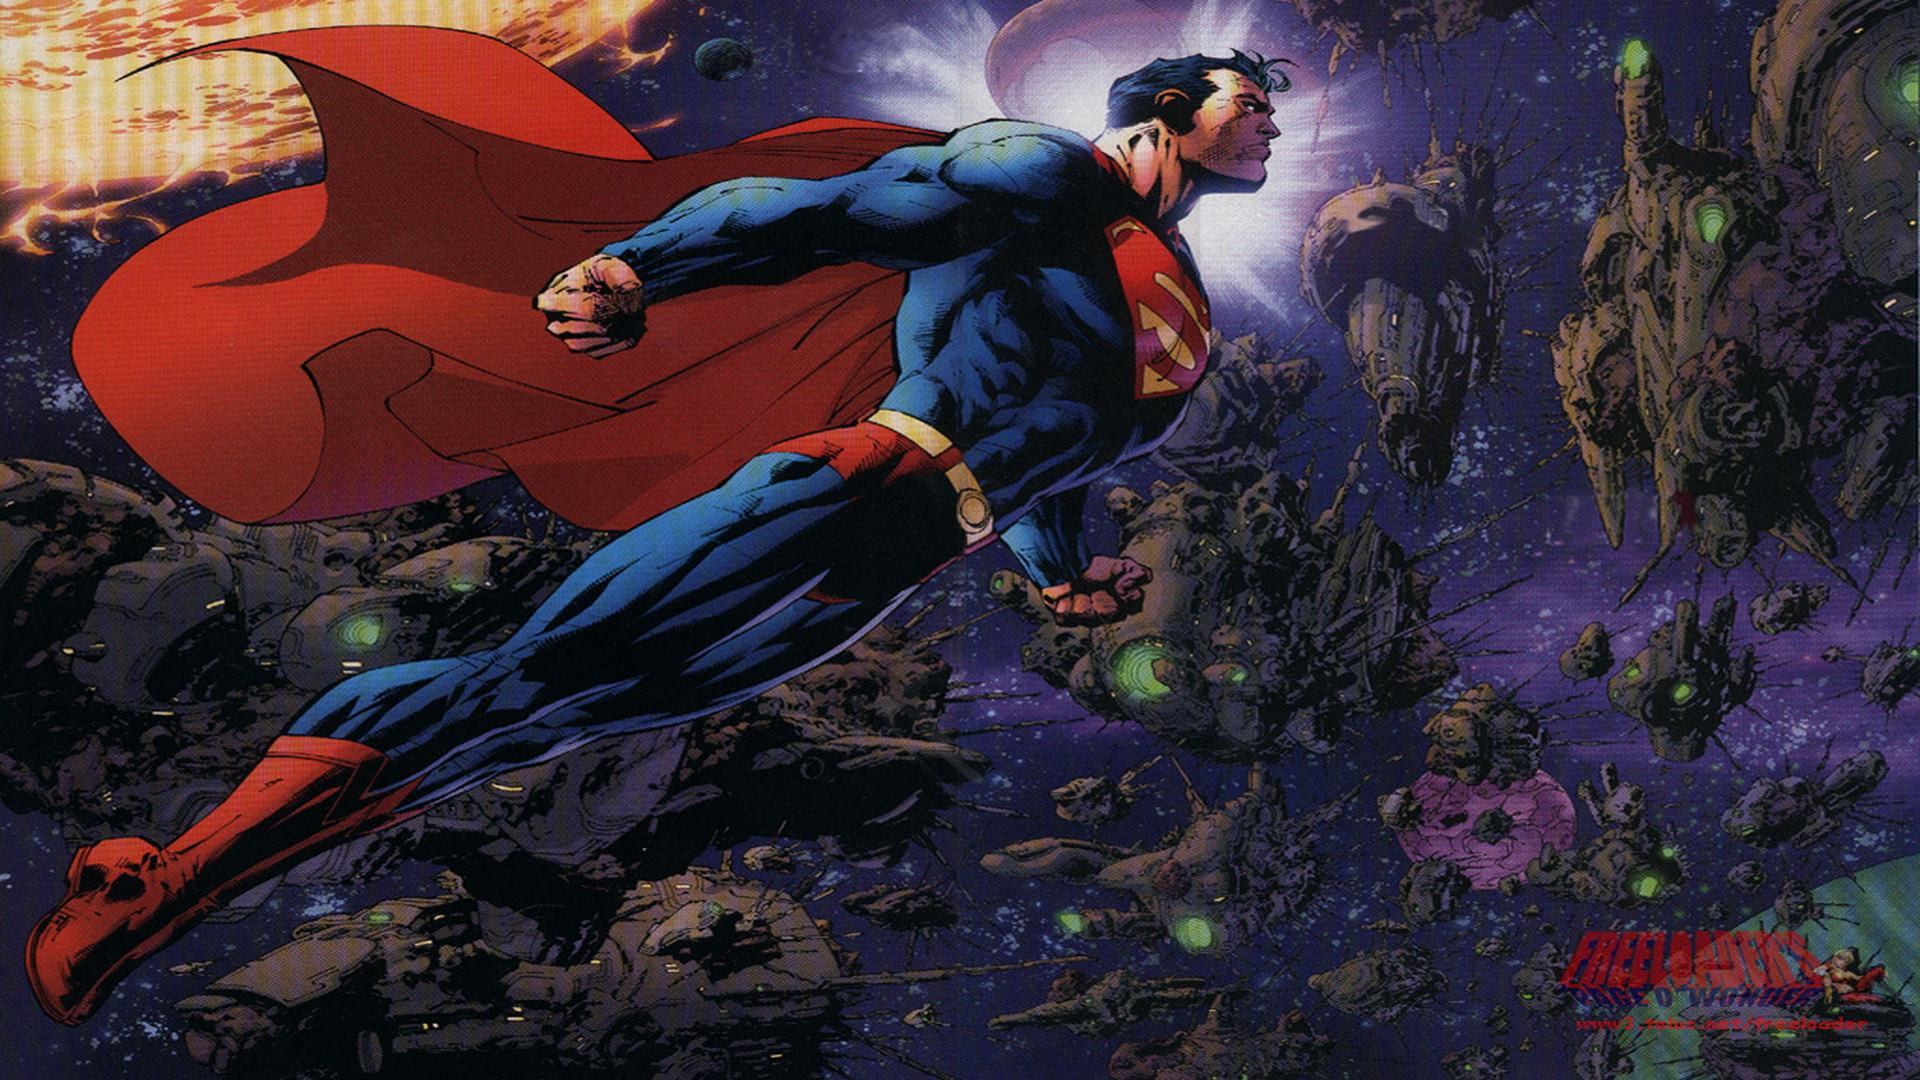 Superman dc comics 3975888 1024 768 Wallpaper HD Desktop Wallpapers 1920x1080